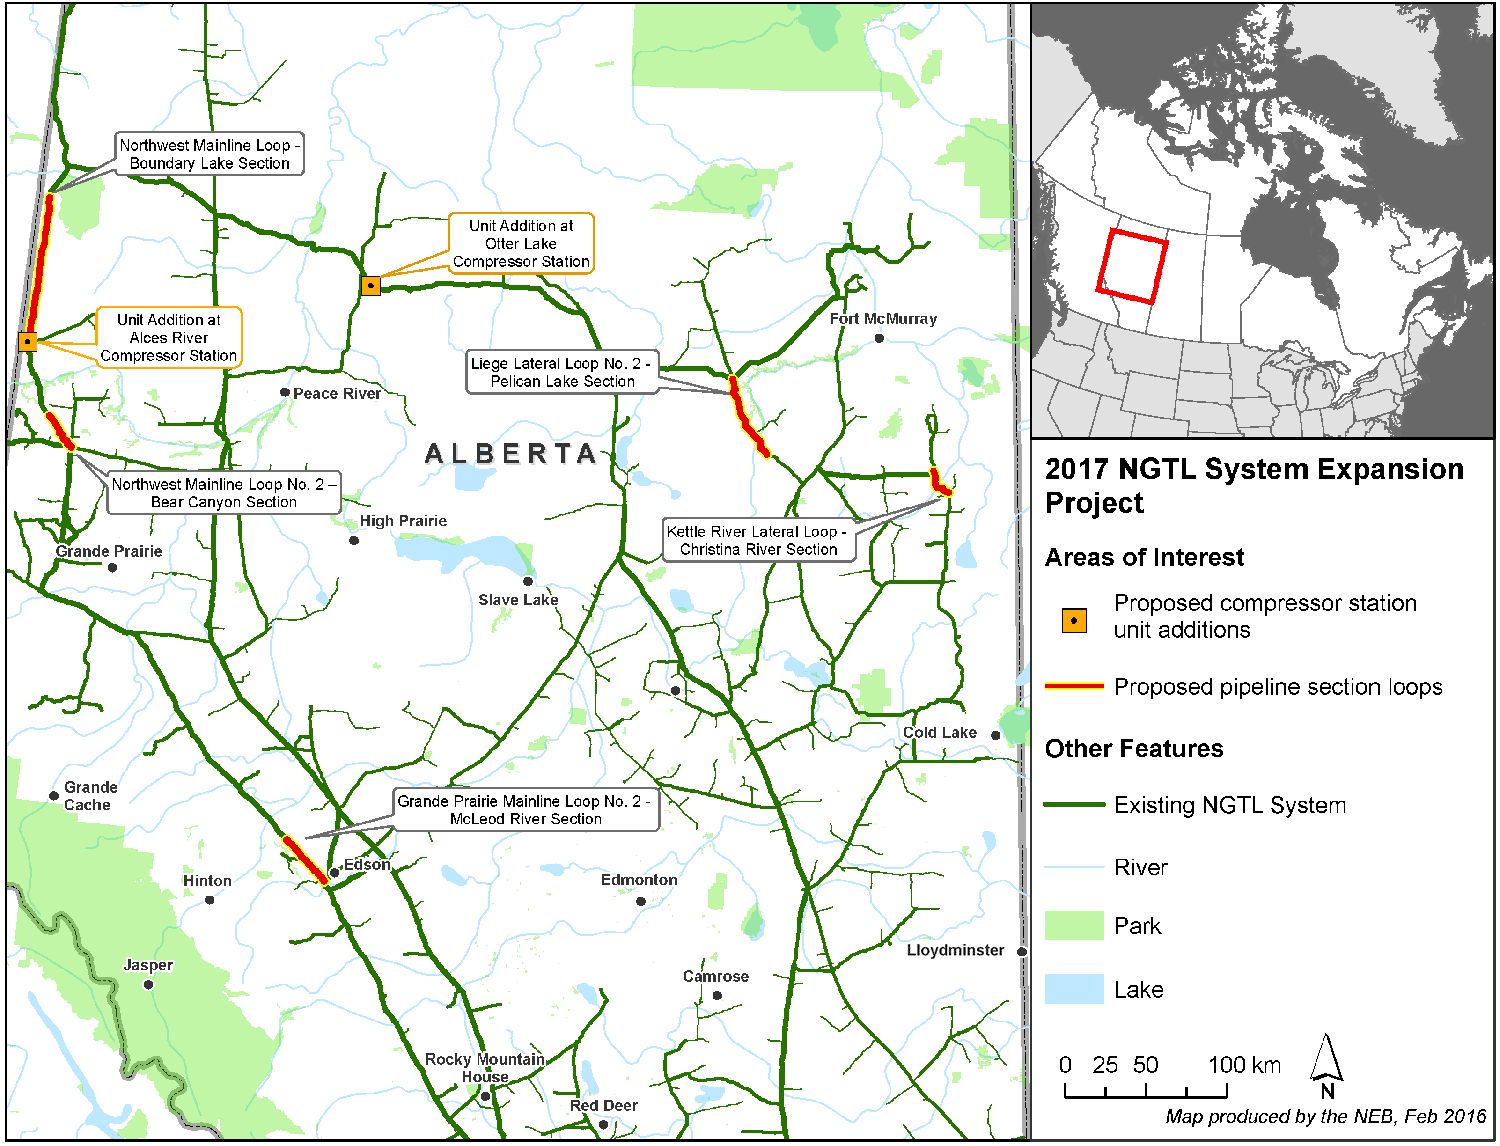 2017 Map of NOVA Gas Transmission Ltd. (NGTL) System Expansion Project.